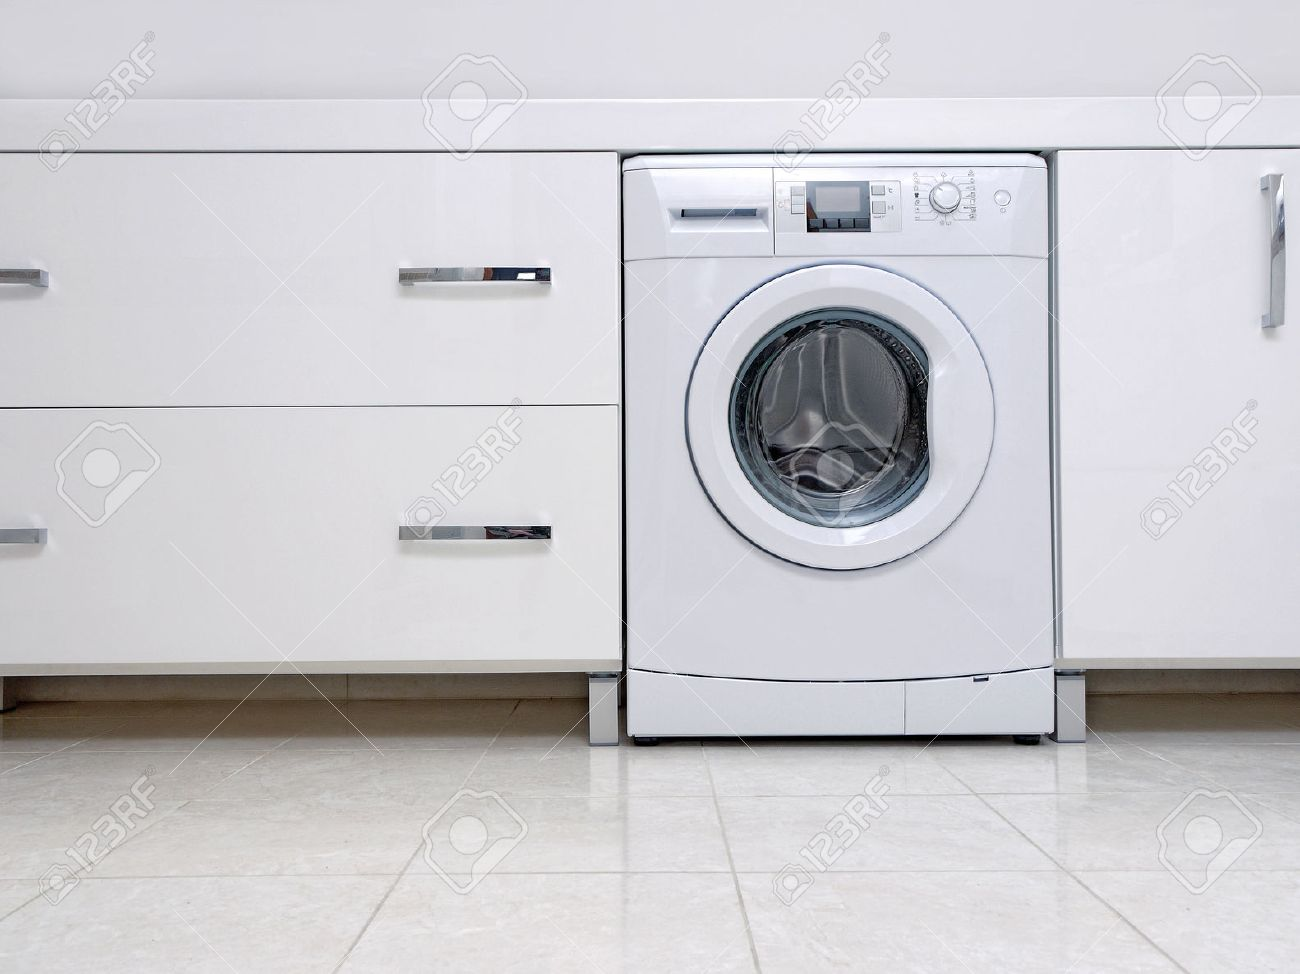 Row of white modern bathroom cabinets with built-in washing machine Stock Photo - 26054014